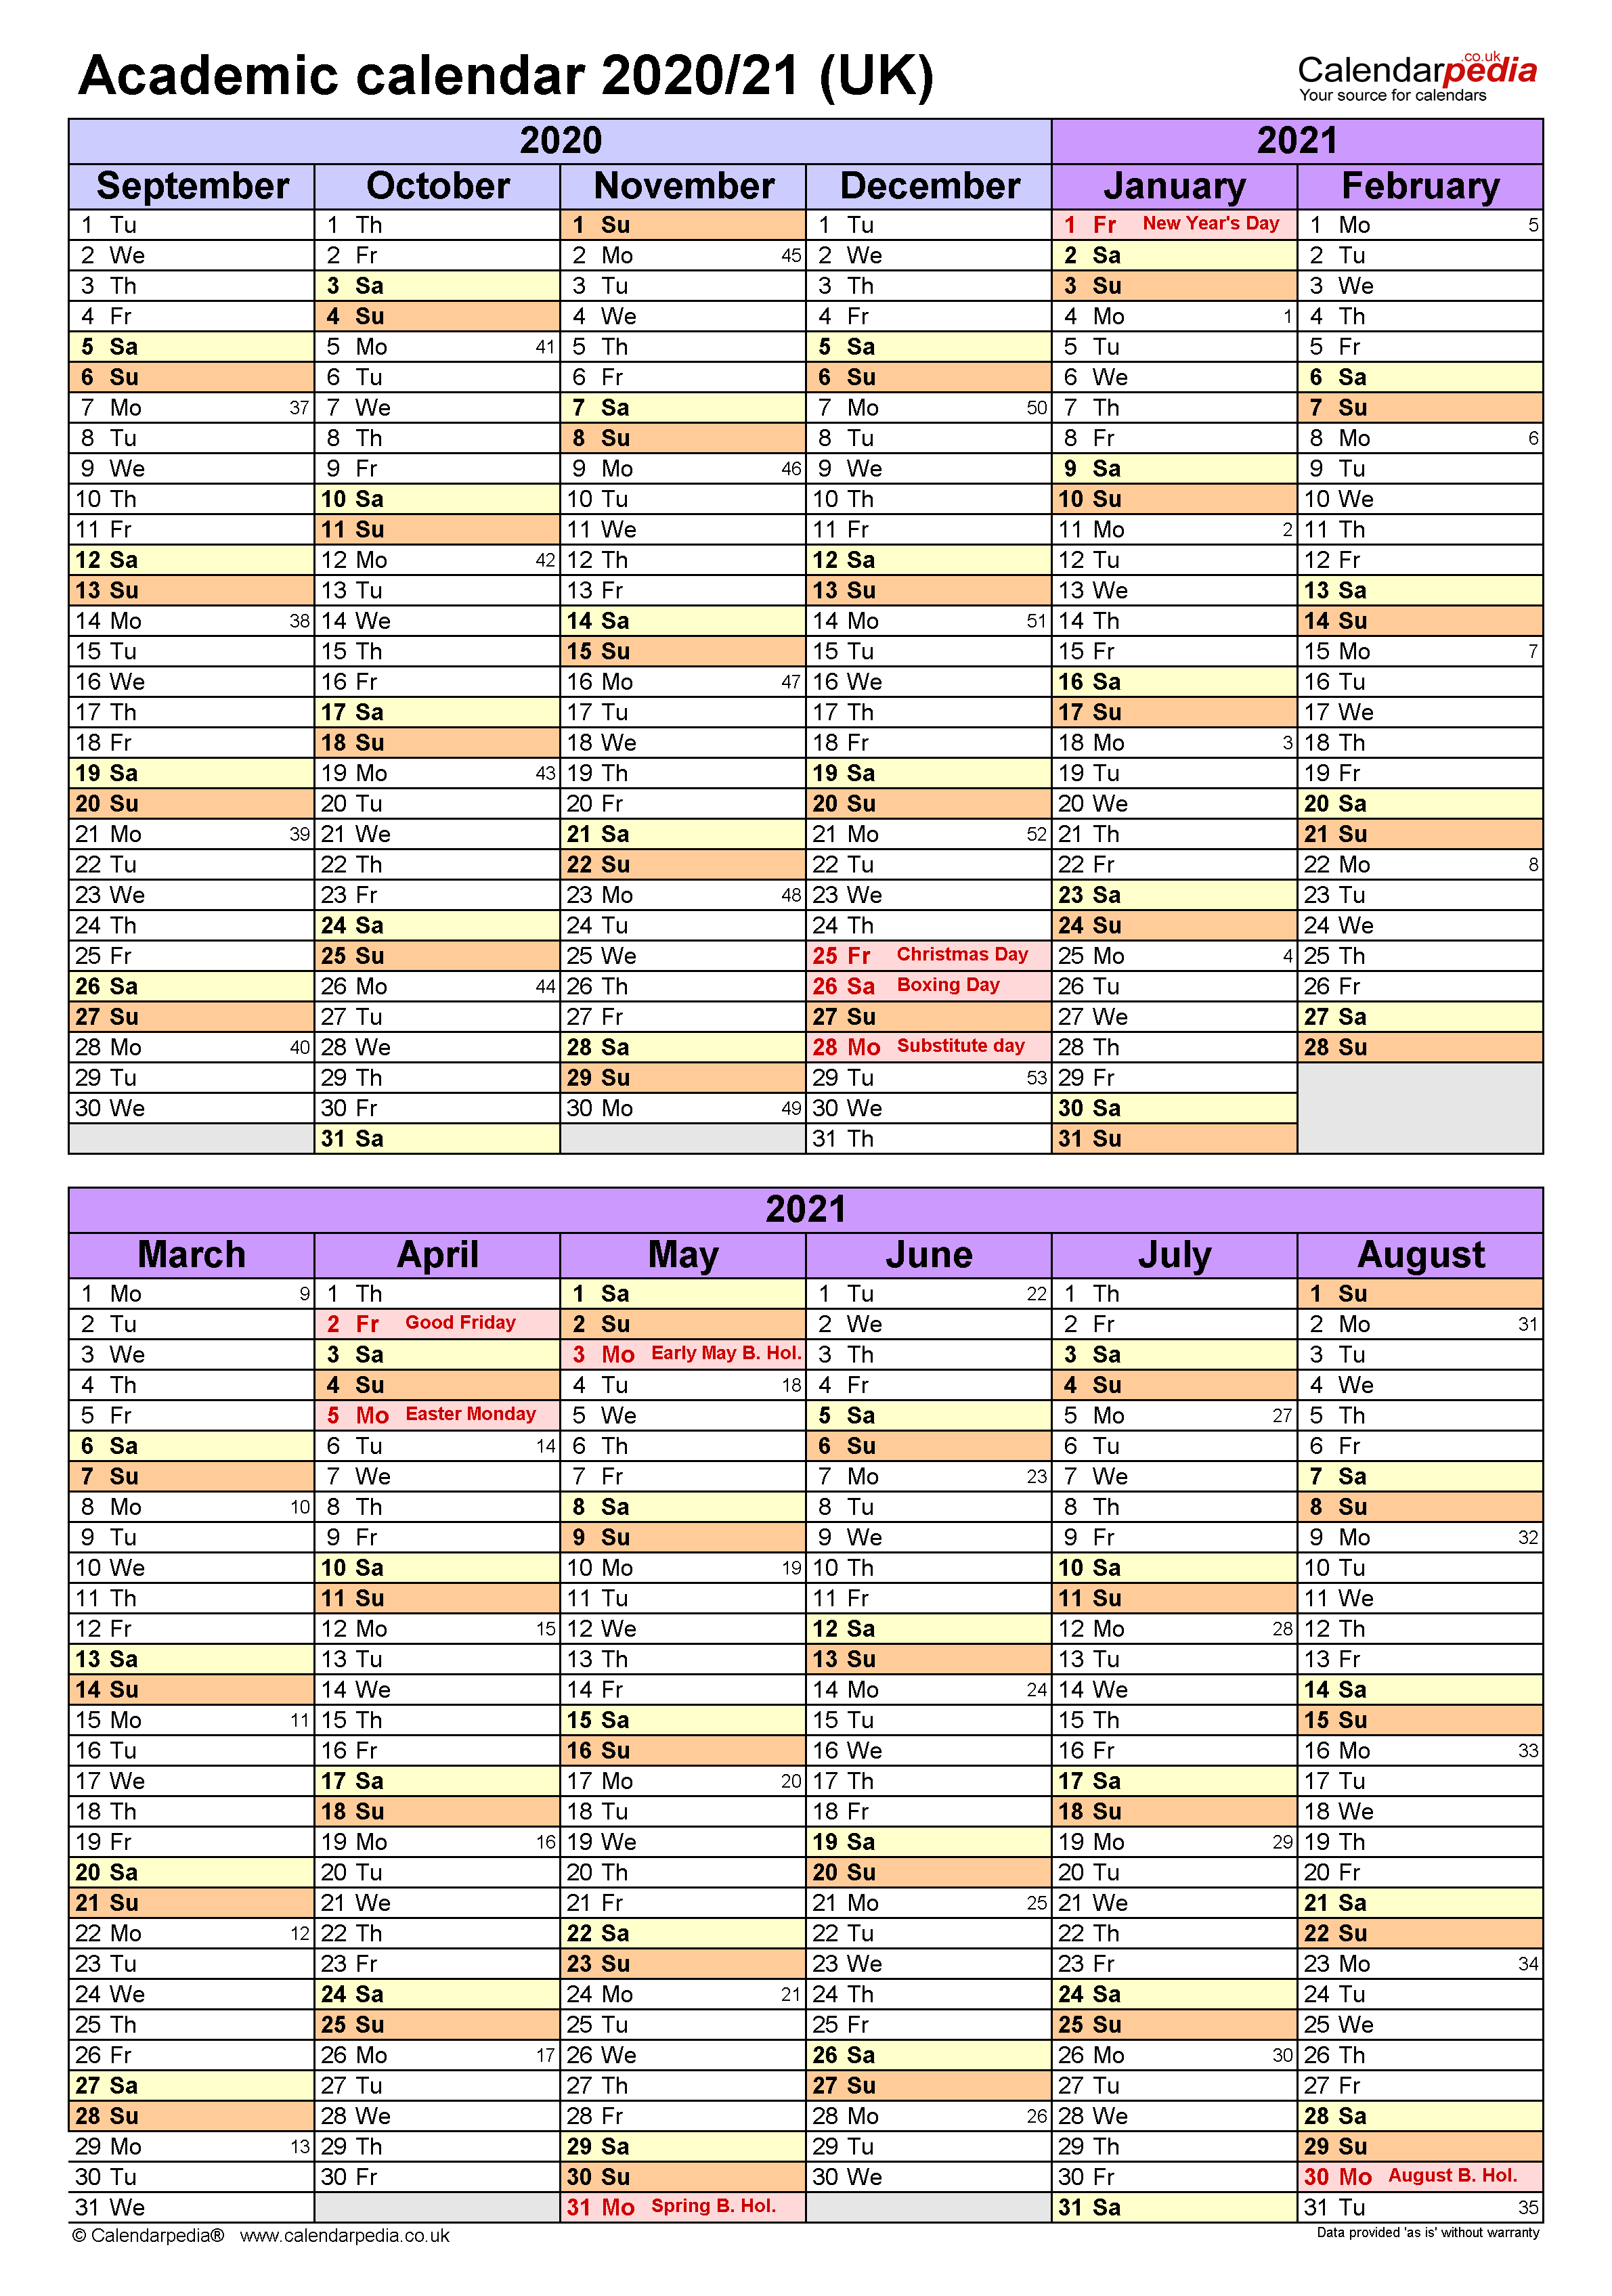 Academic calendars 2020/21 UK - free printable Word templates